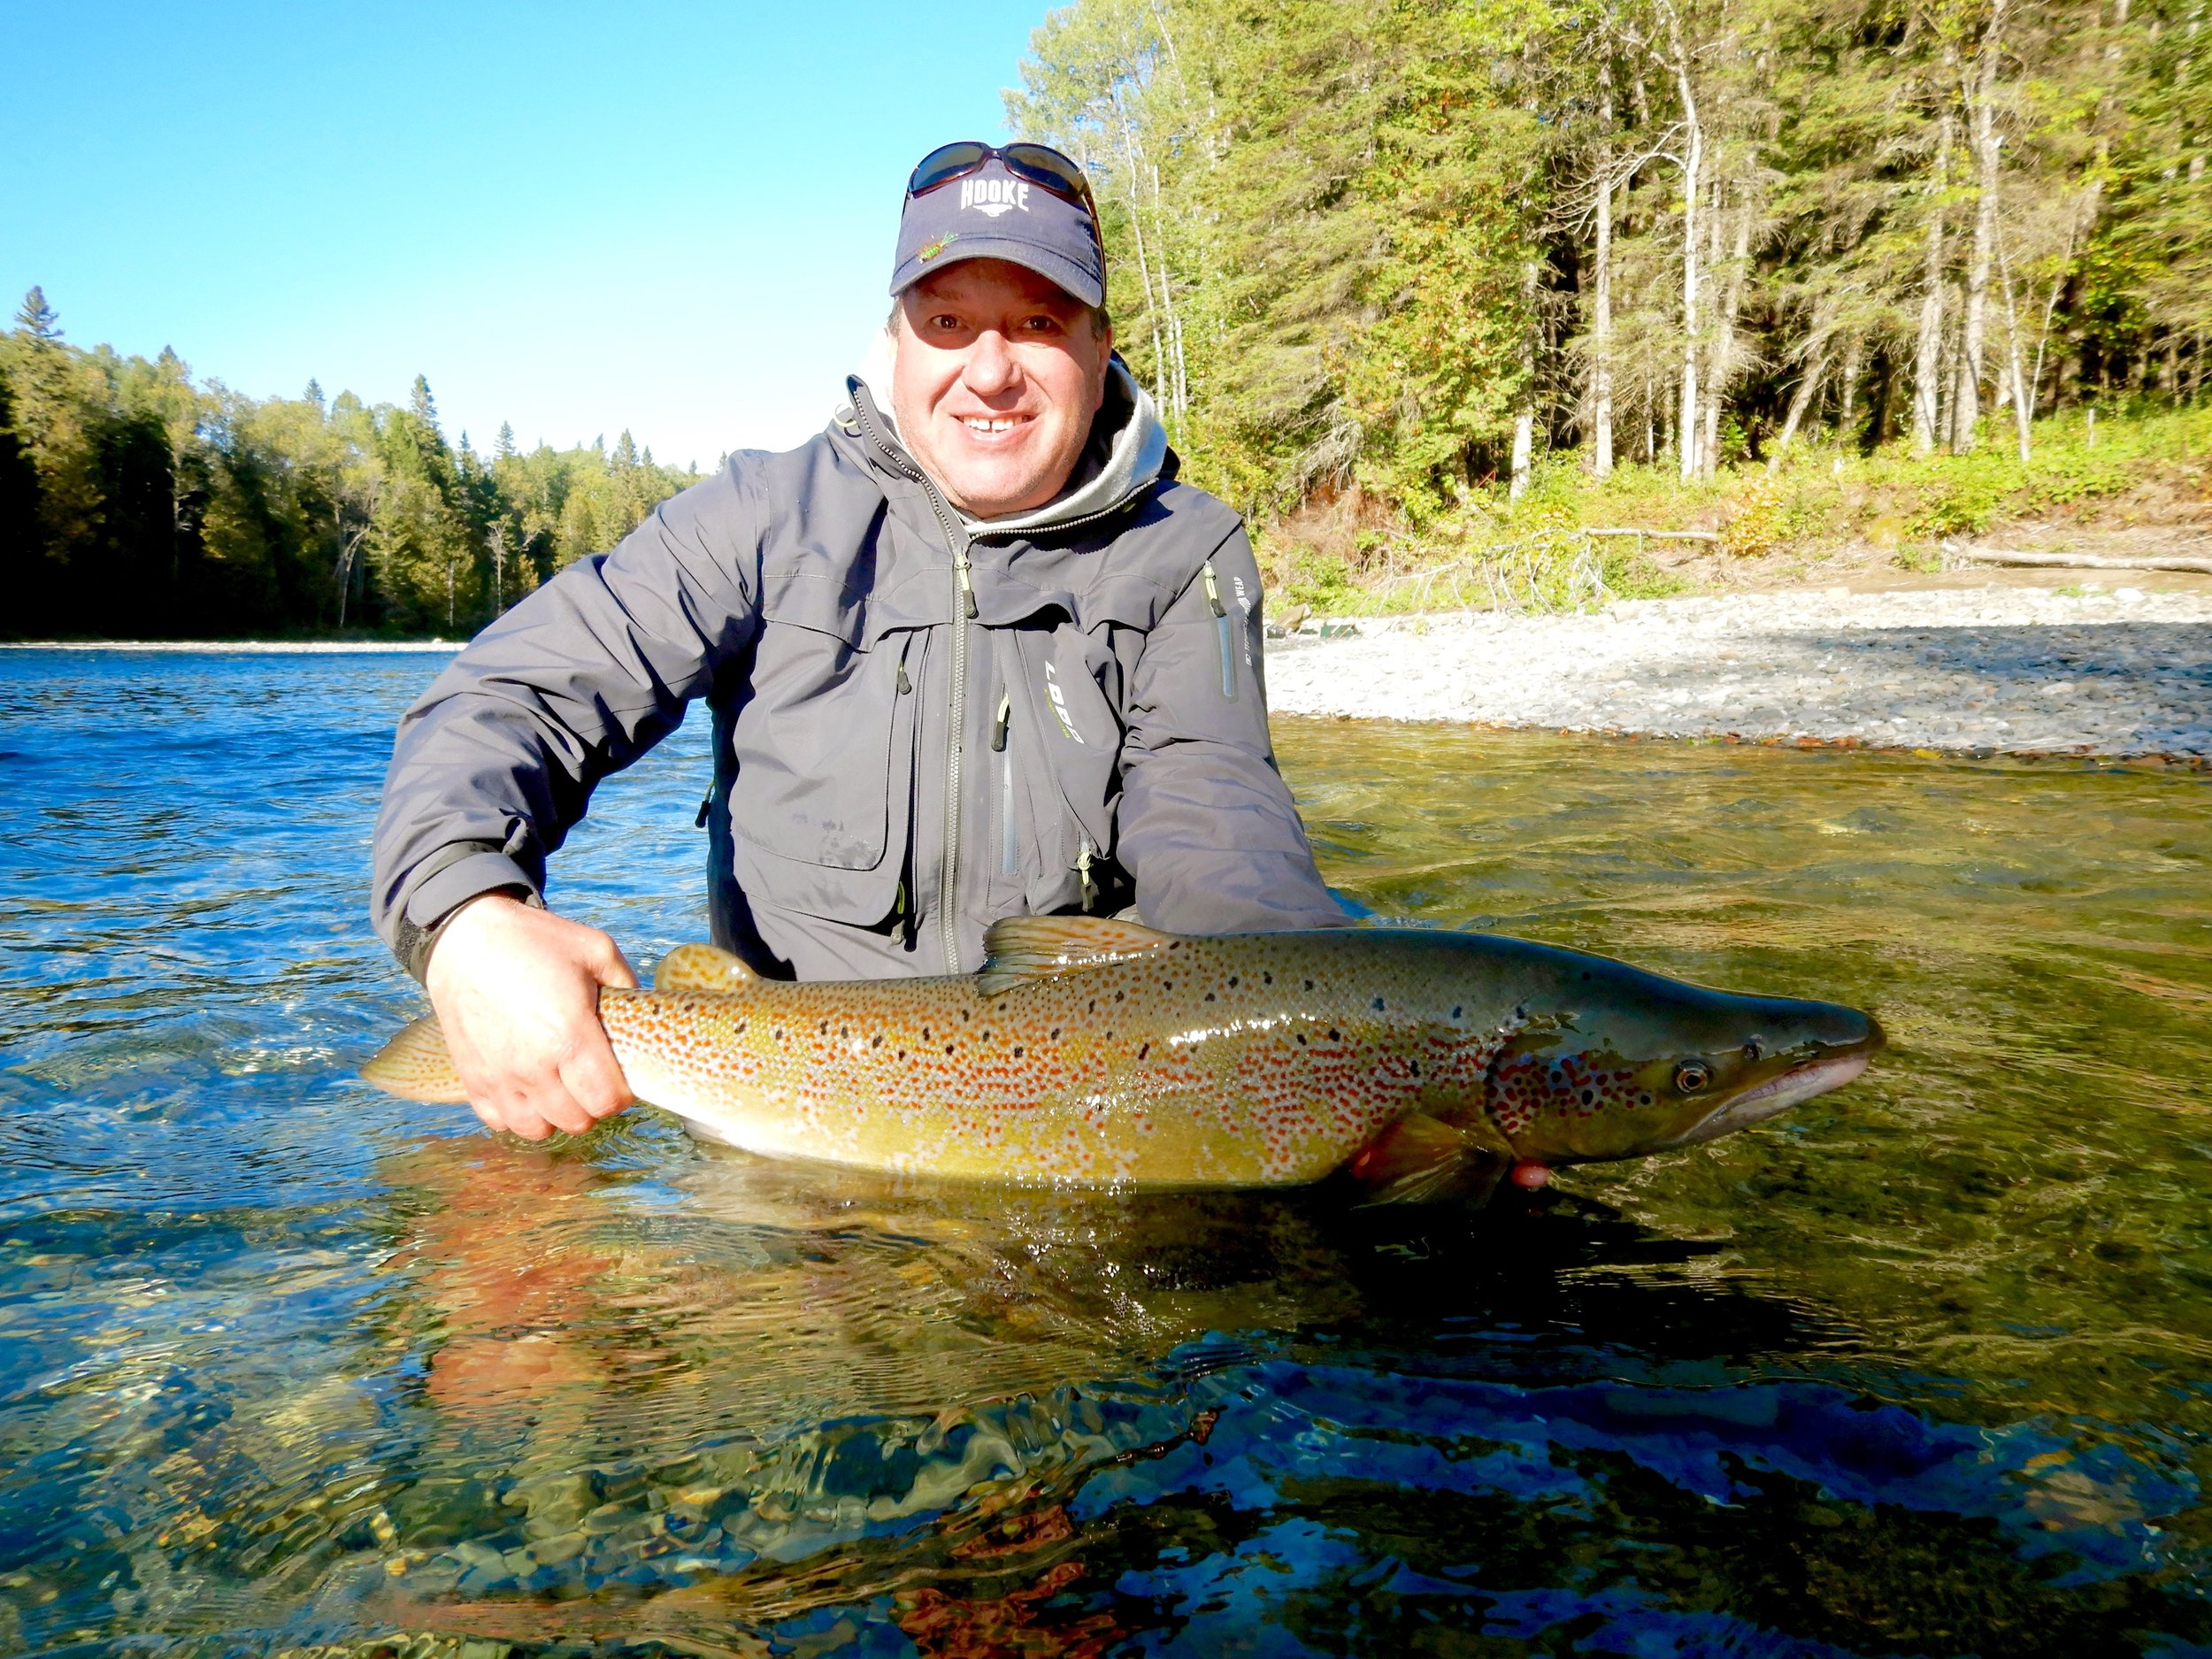 This was Steve Bujold's first trip to Salmon Lodge, not his last, see you next year Steve, congratulations !